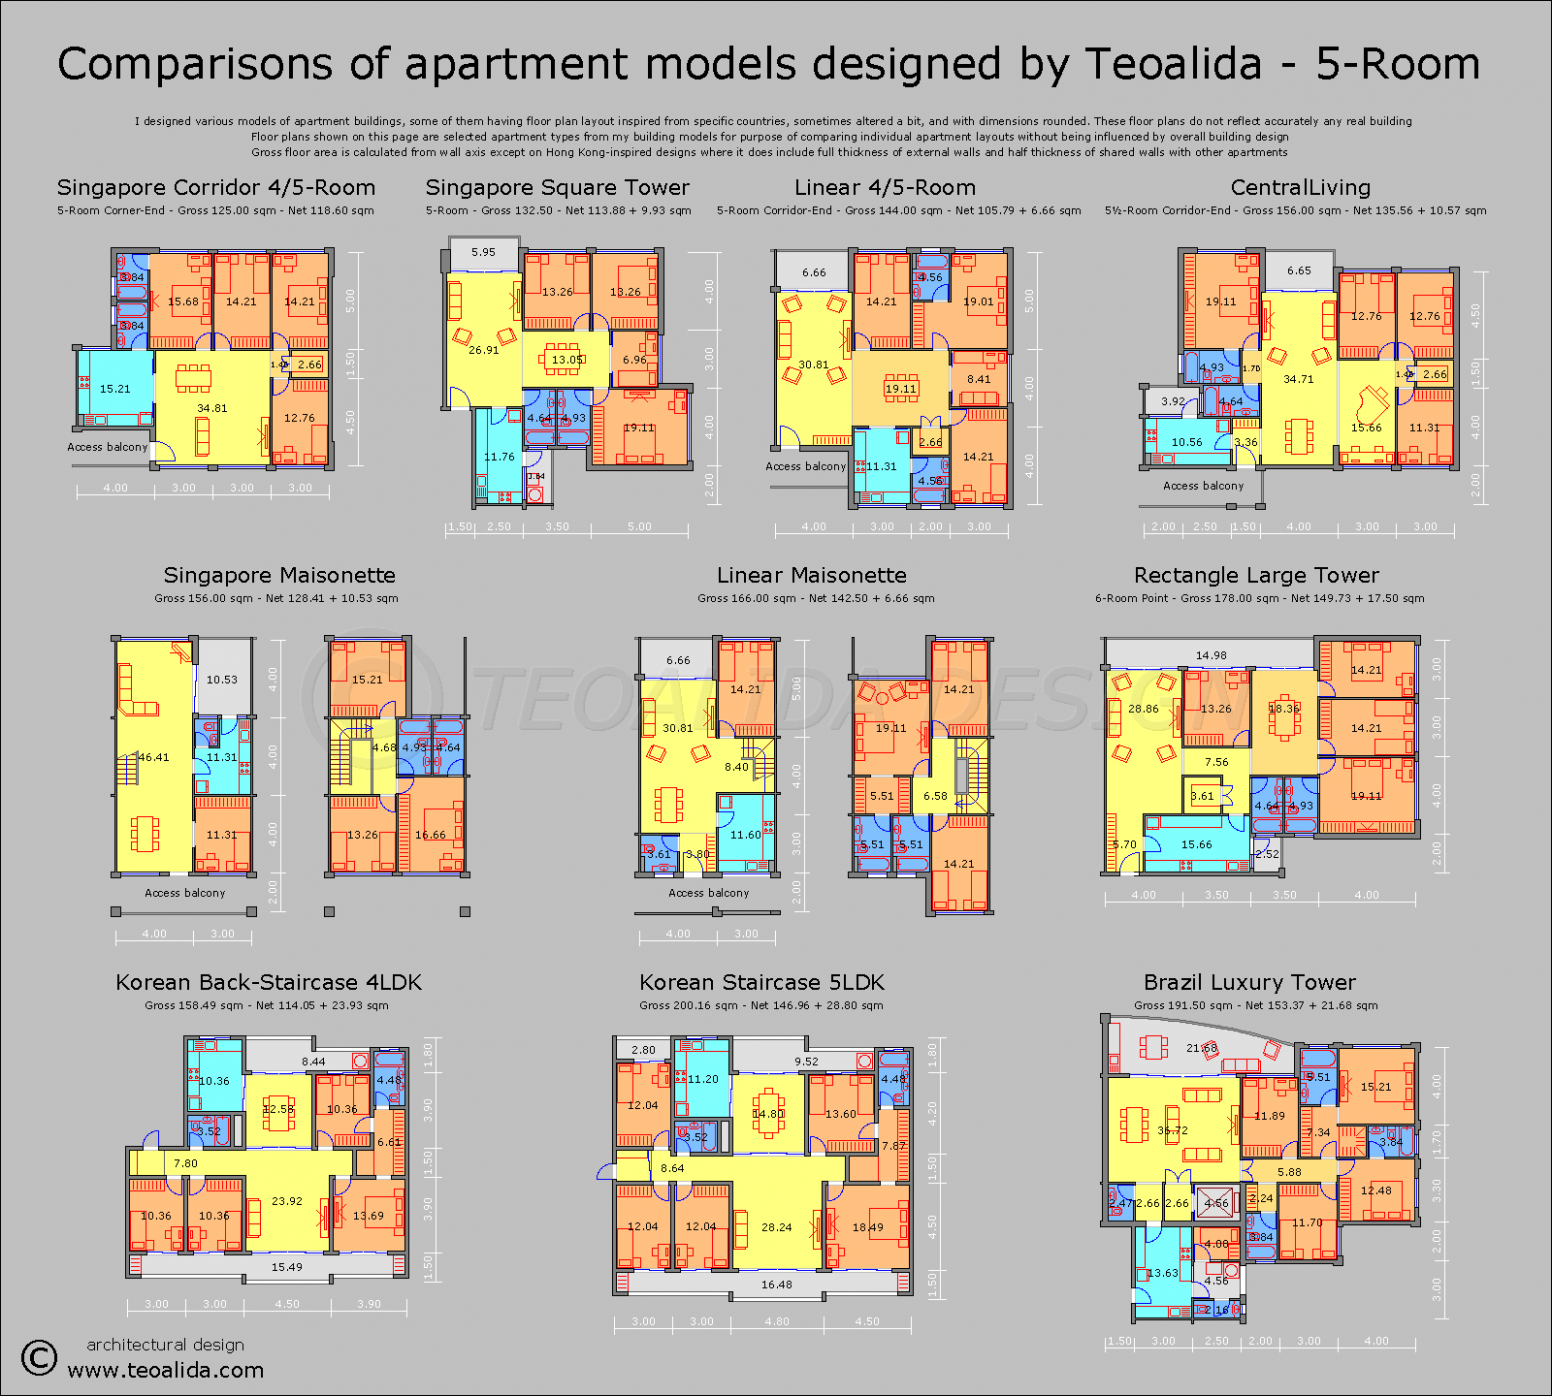 Apartment plans 12-12 sqm designed by me - Teoalida's website